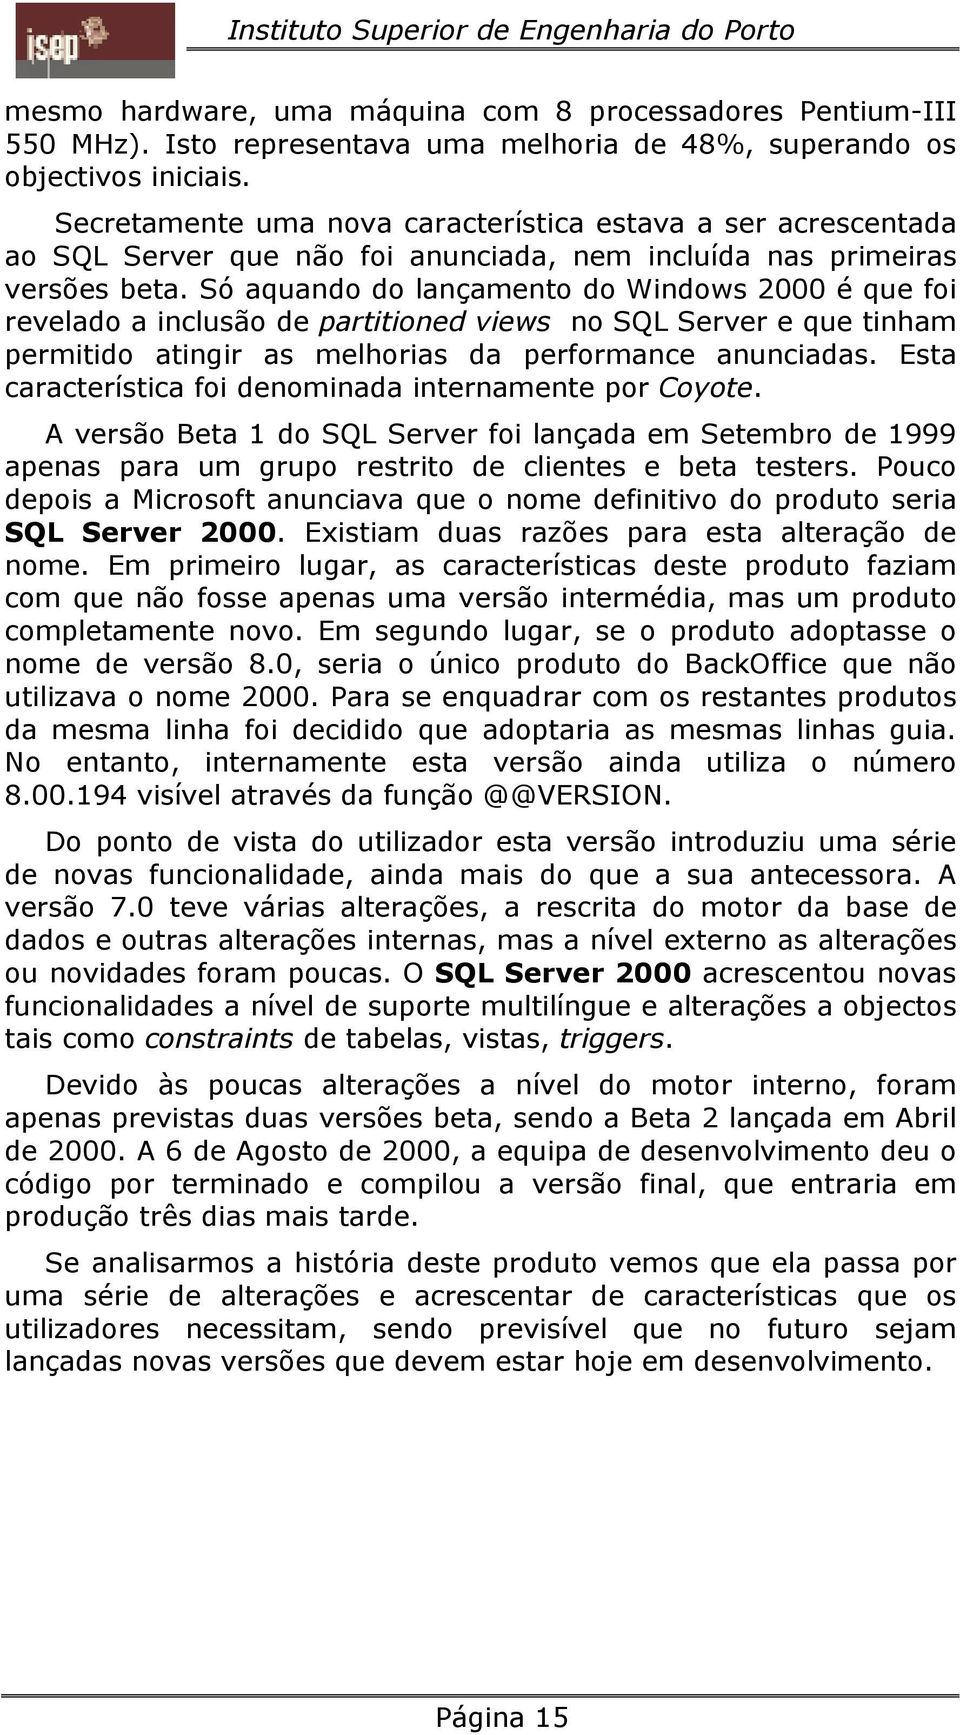 Só aquando do lançamento do Windows 2000 é que foi revelado a inclusão de partitioned views no SQL Server e que tinham permitido atingir as melhorias da performance anunciadas.